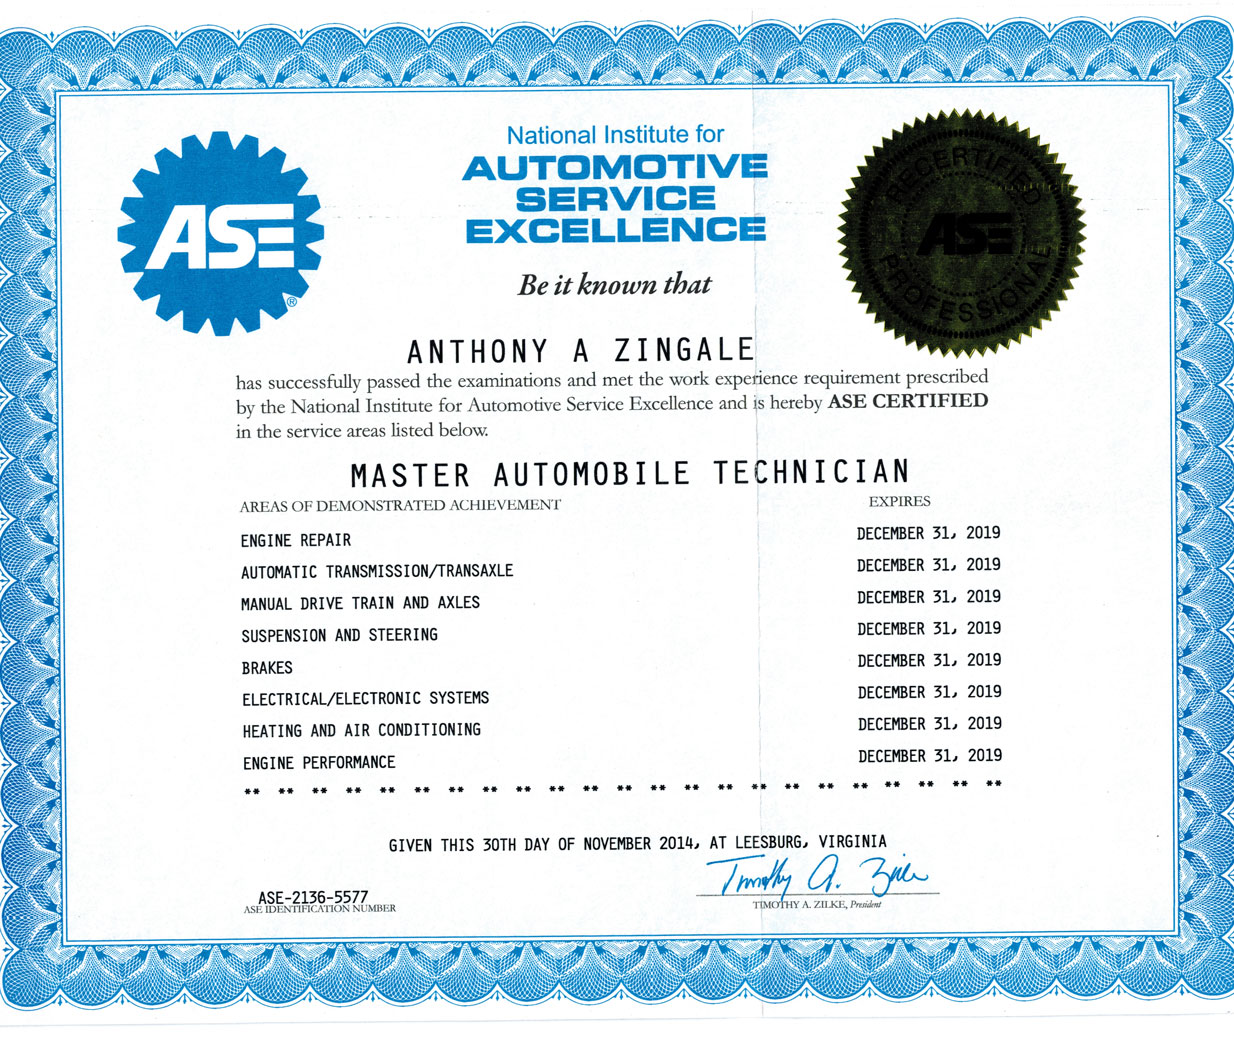 Tony Zingale | ASE Certification